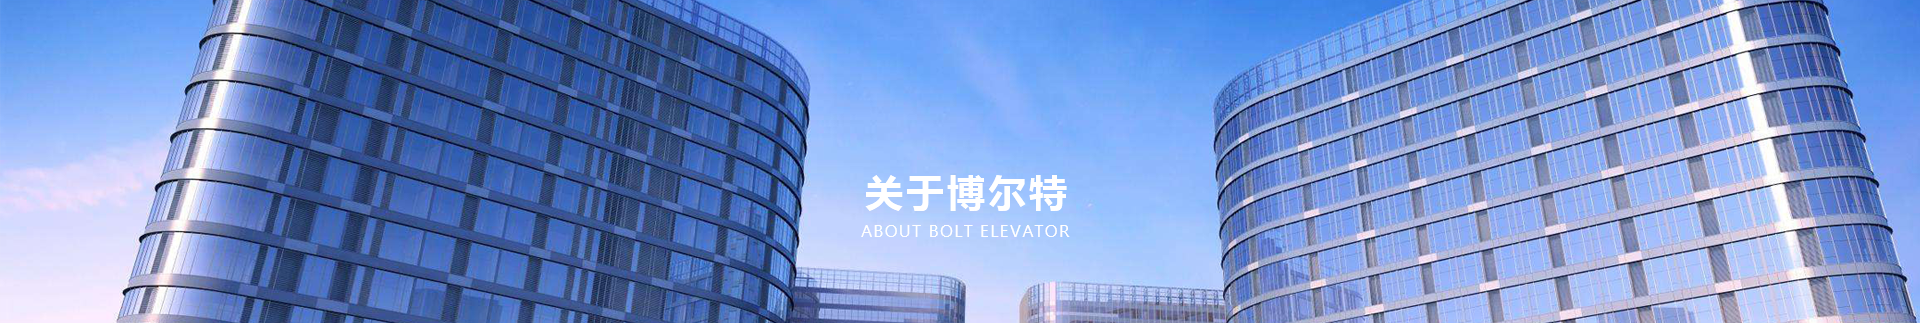 http://www.bolt-elevator.cn/data/upload/201911/20191118101154_802.png